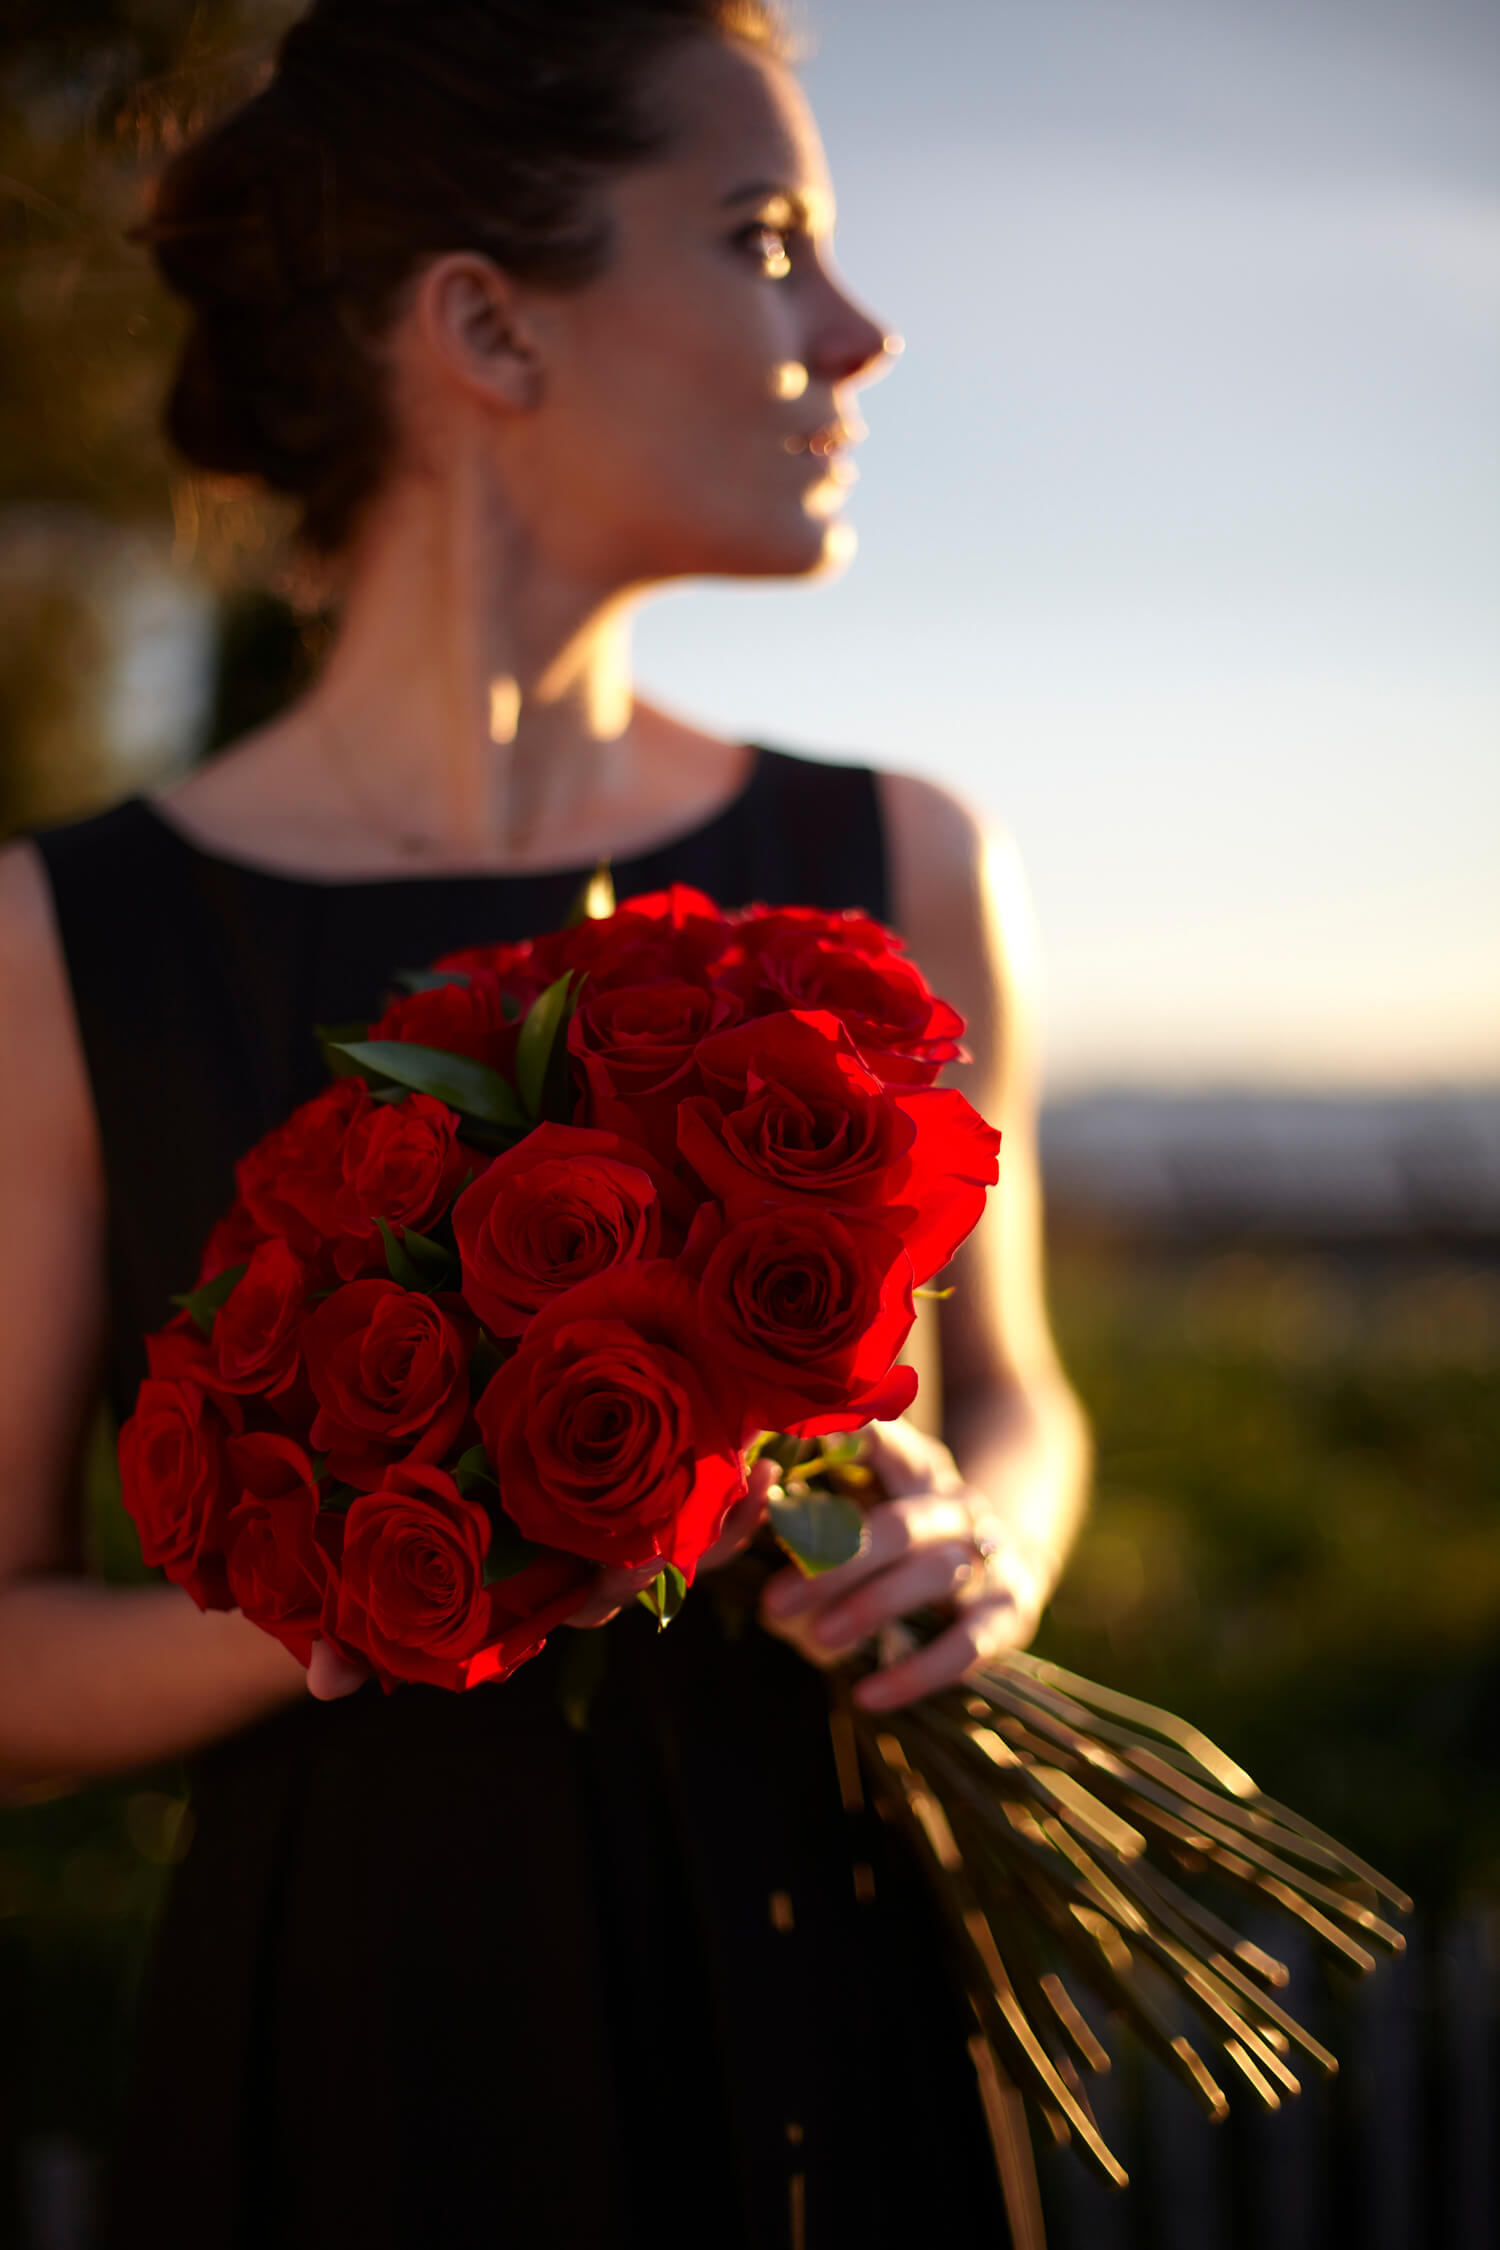 Geting a girl flowers when you start dating